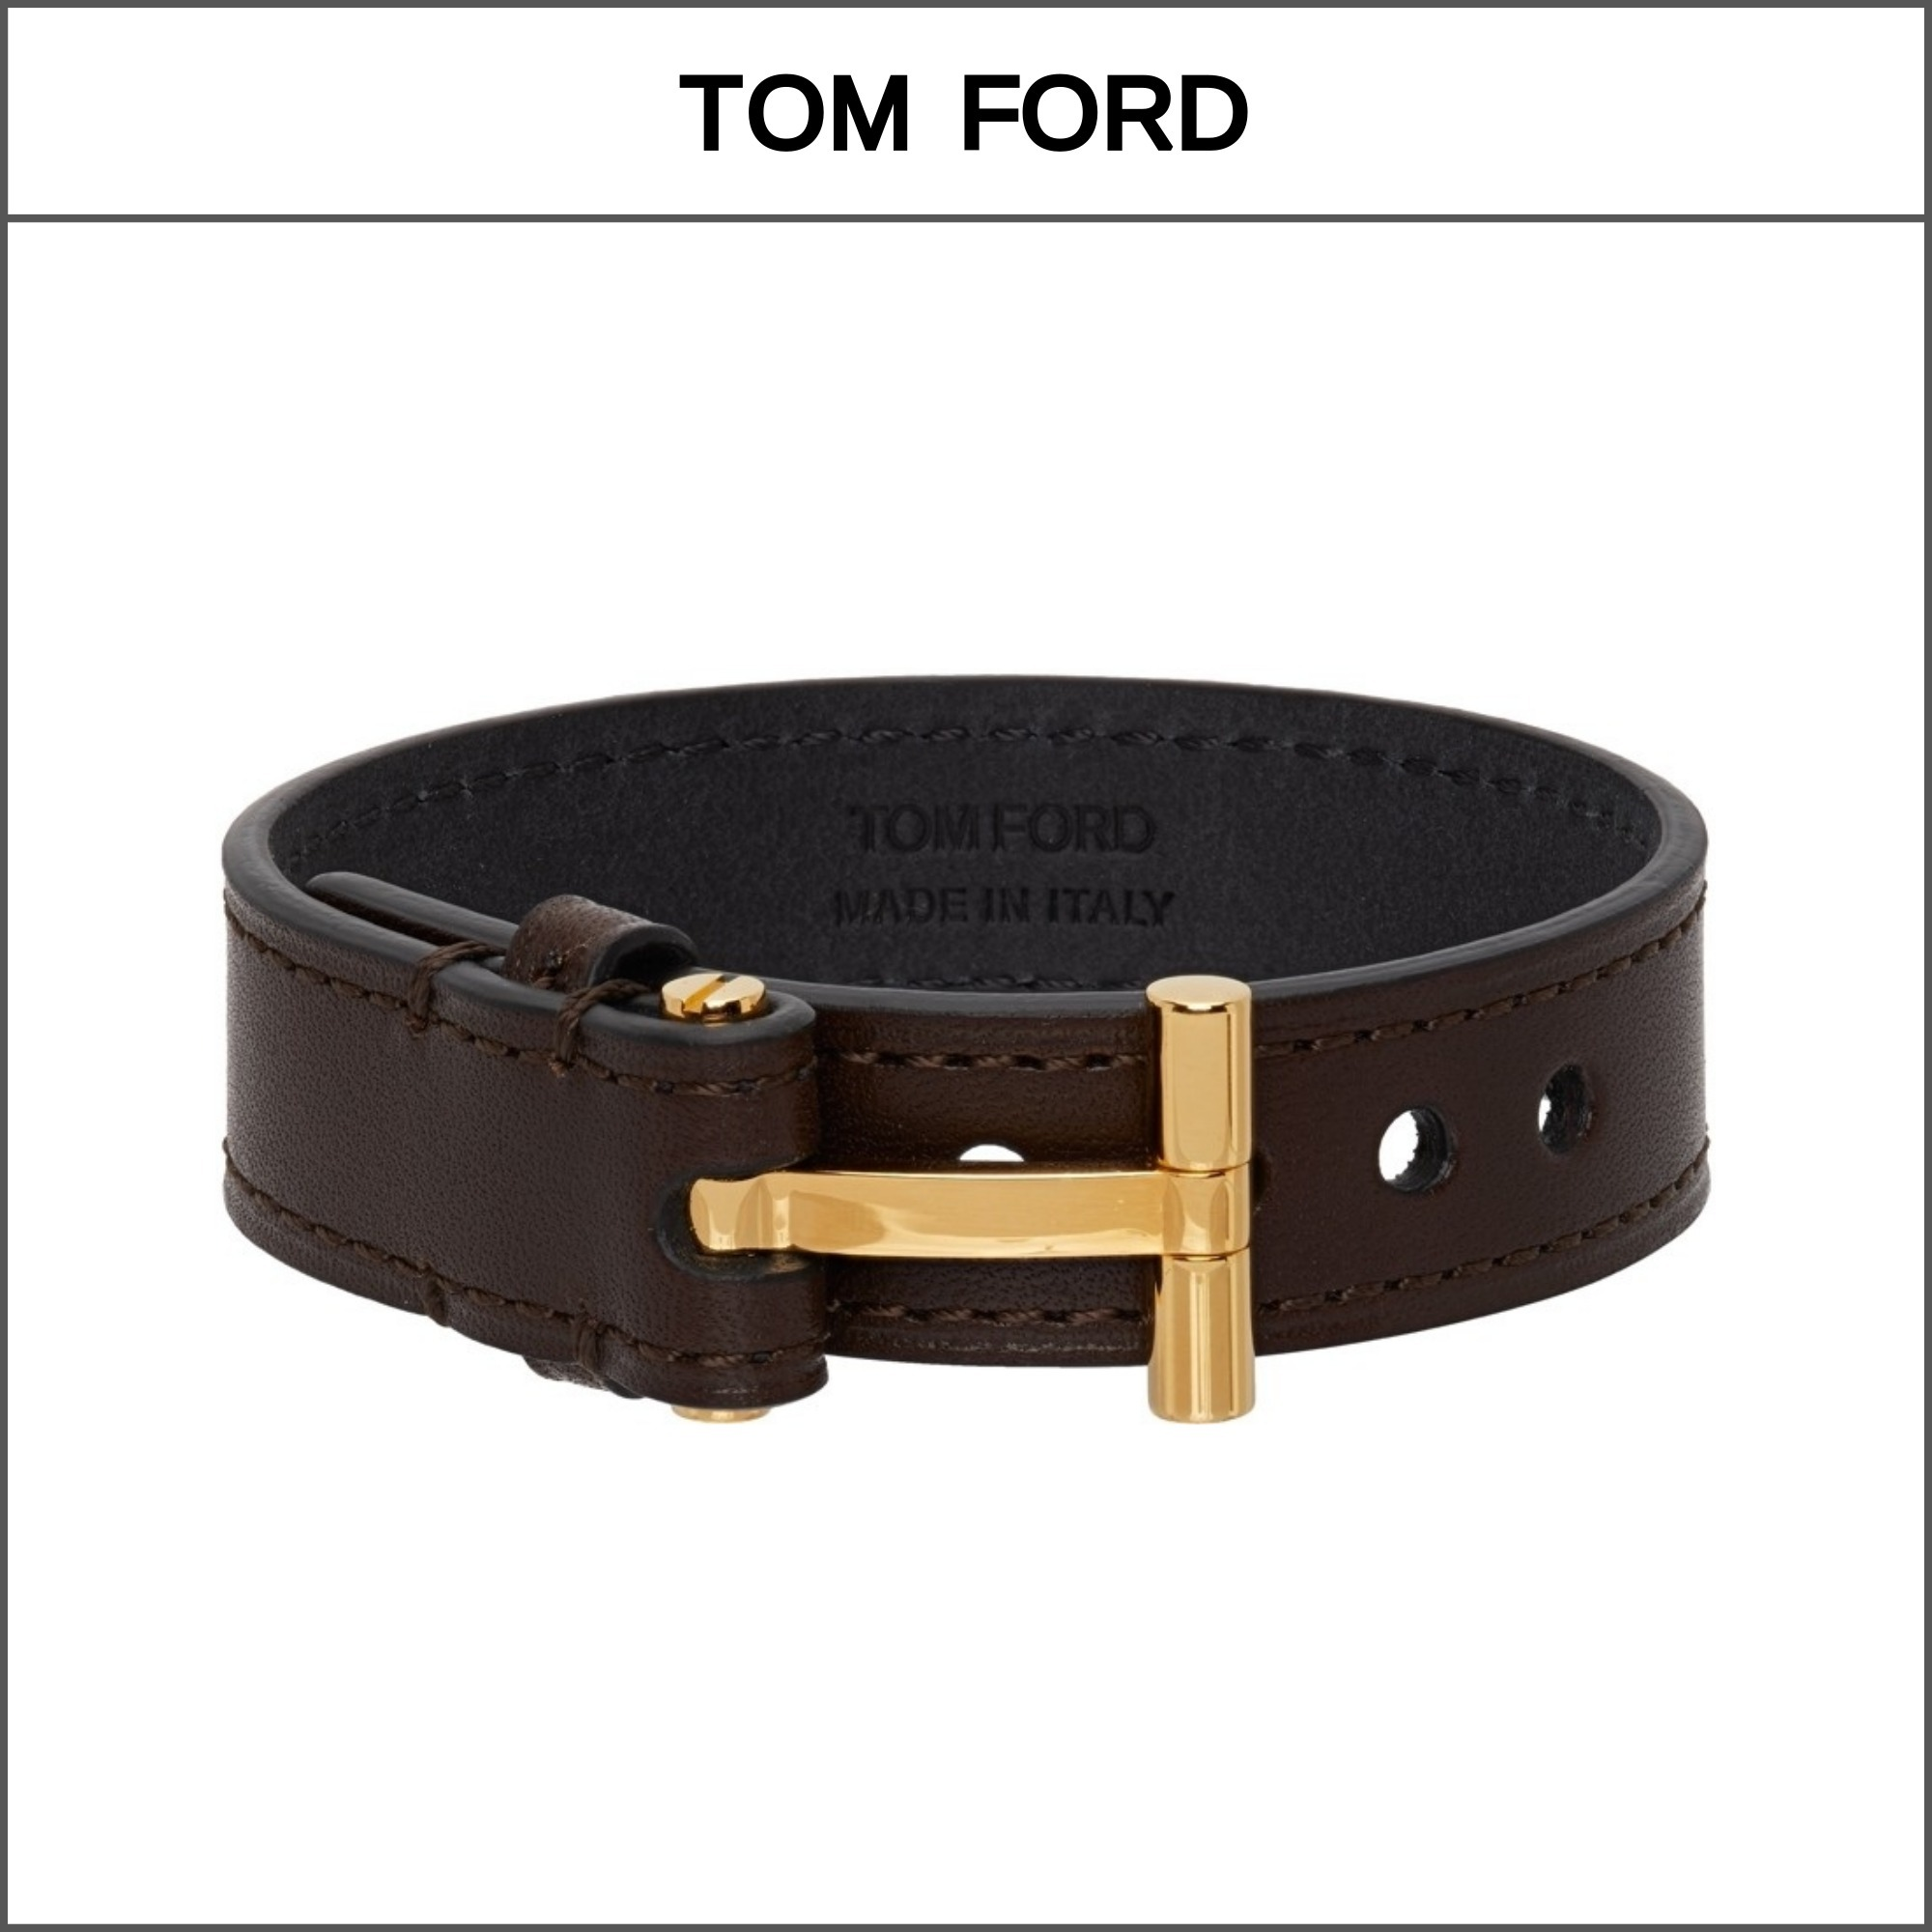 【TOM FORD】T-BUCKLE レザーブレスレット '関税込み' (TOM FORD/ブレスレット) 65029064